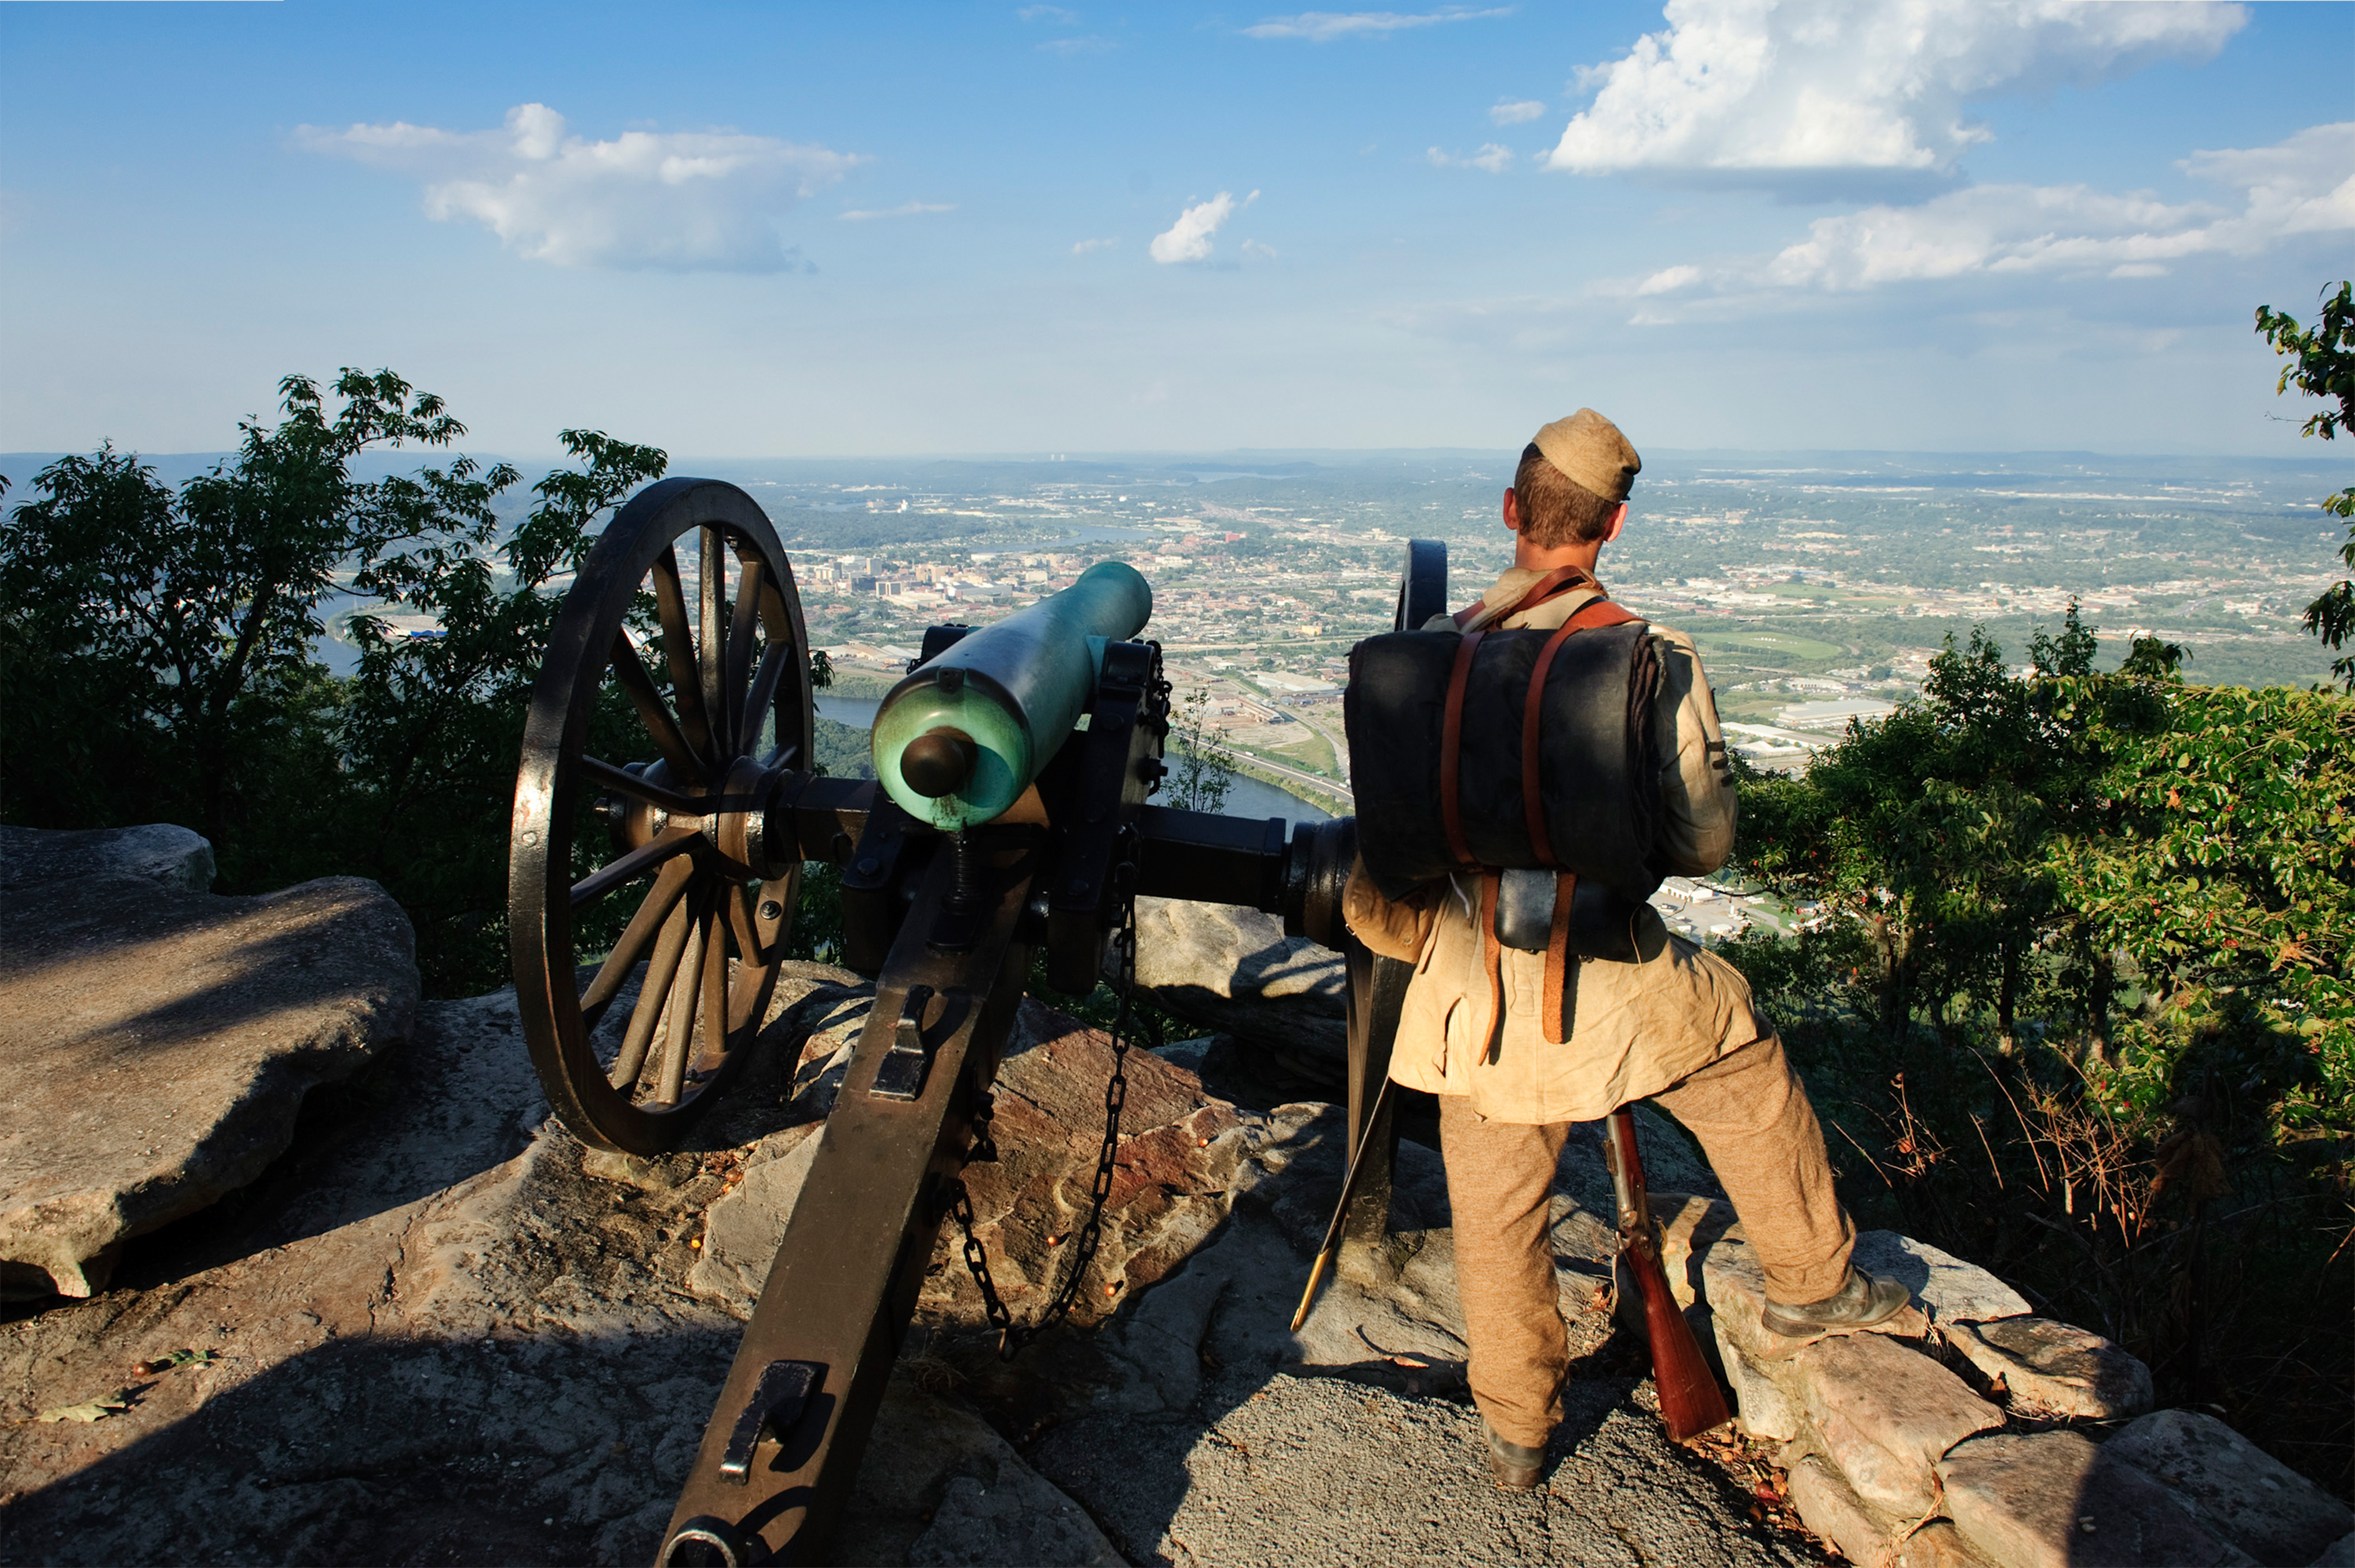 Battle of Chickamauga at Point Park in Chattanooga, Tennessee